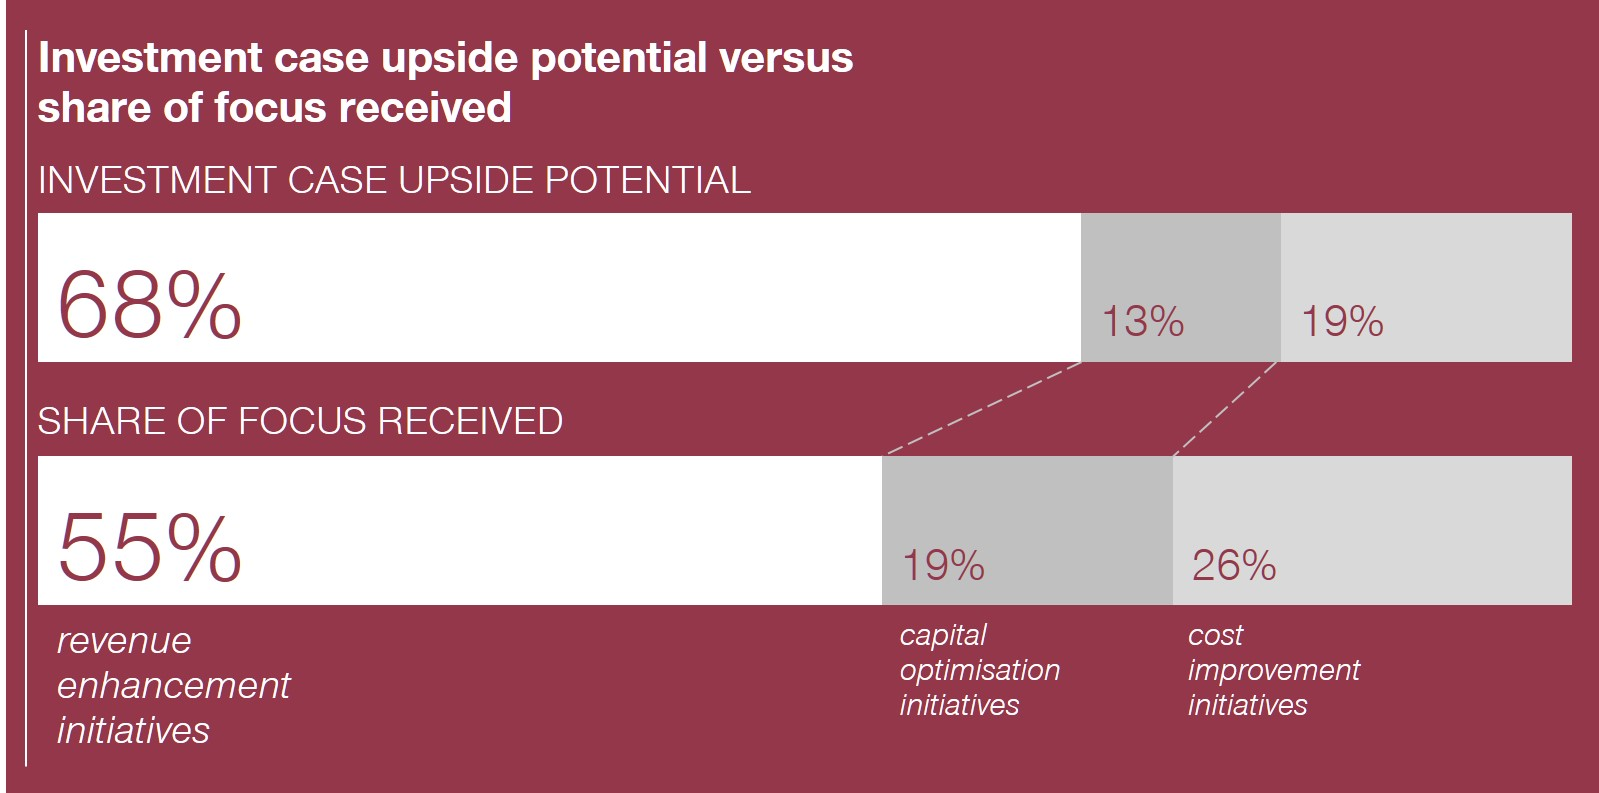 Investment case upside potential versus share of focus received